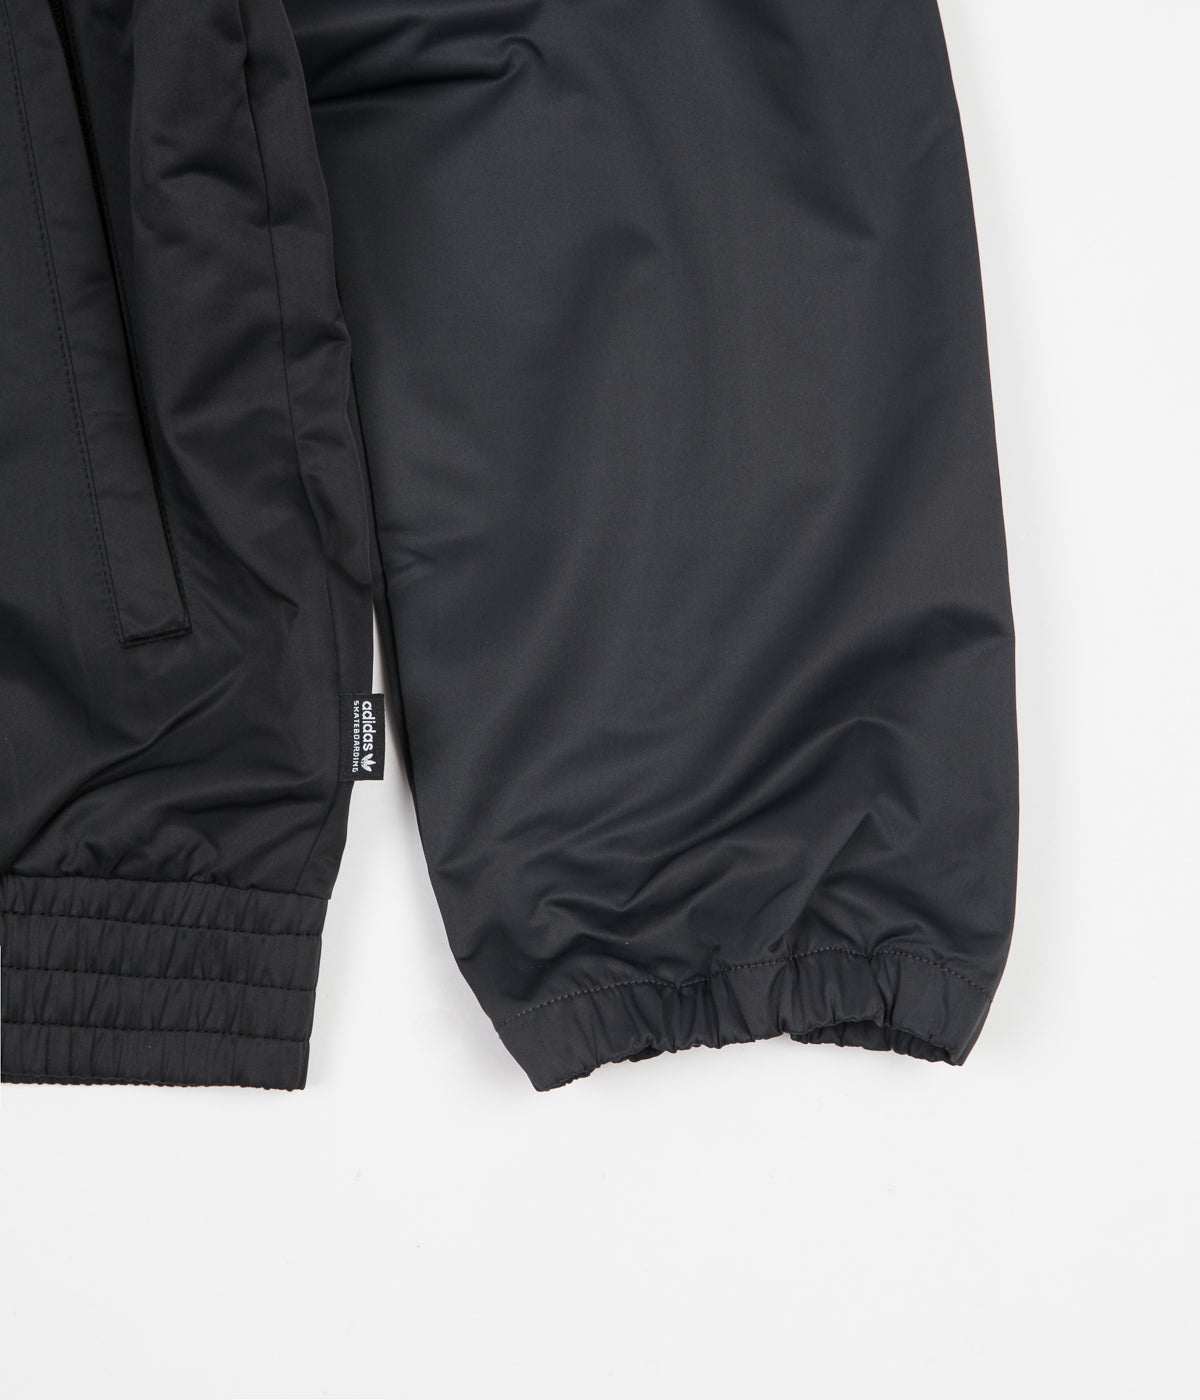 brand new ade0f 80246 ... Adidas x Numbers Edition Track Jacket - Black  Grey Five  Carbon ...